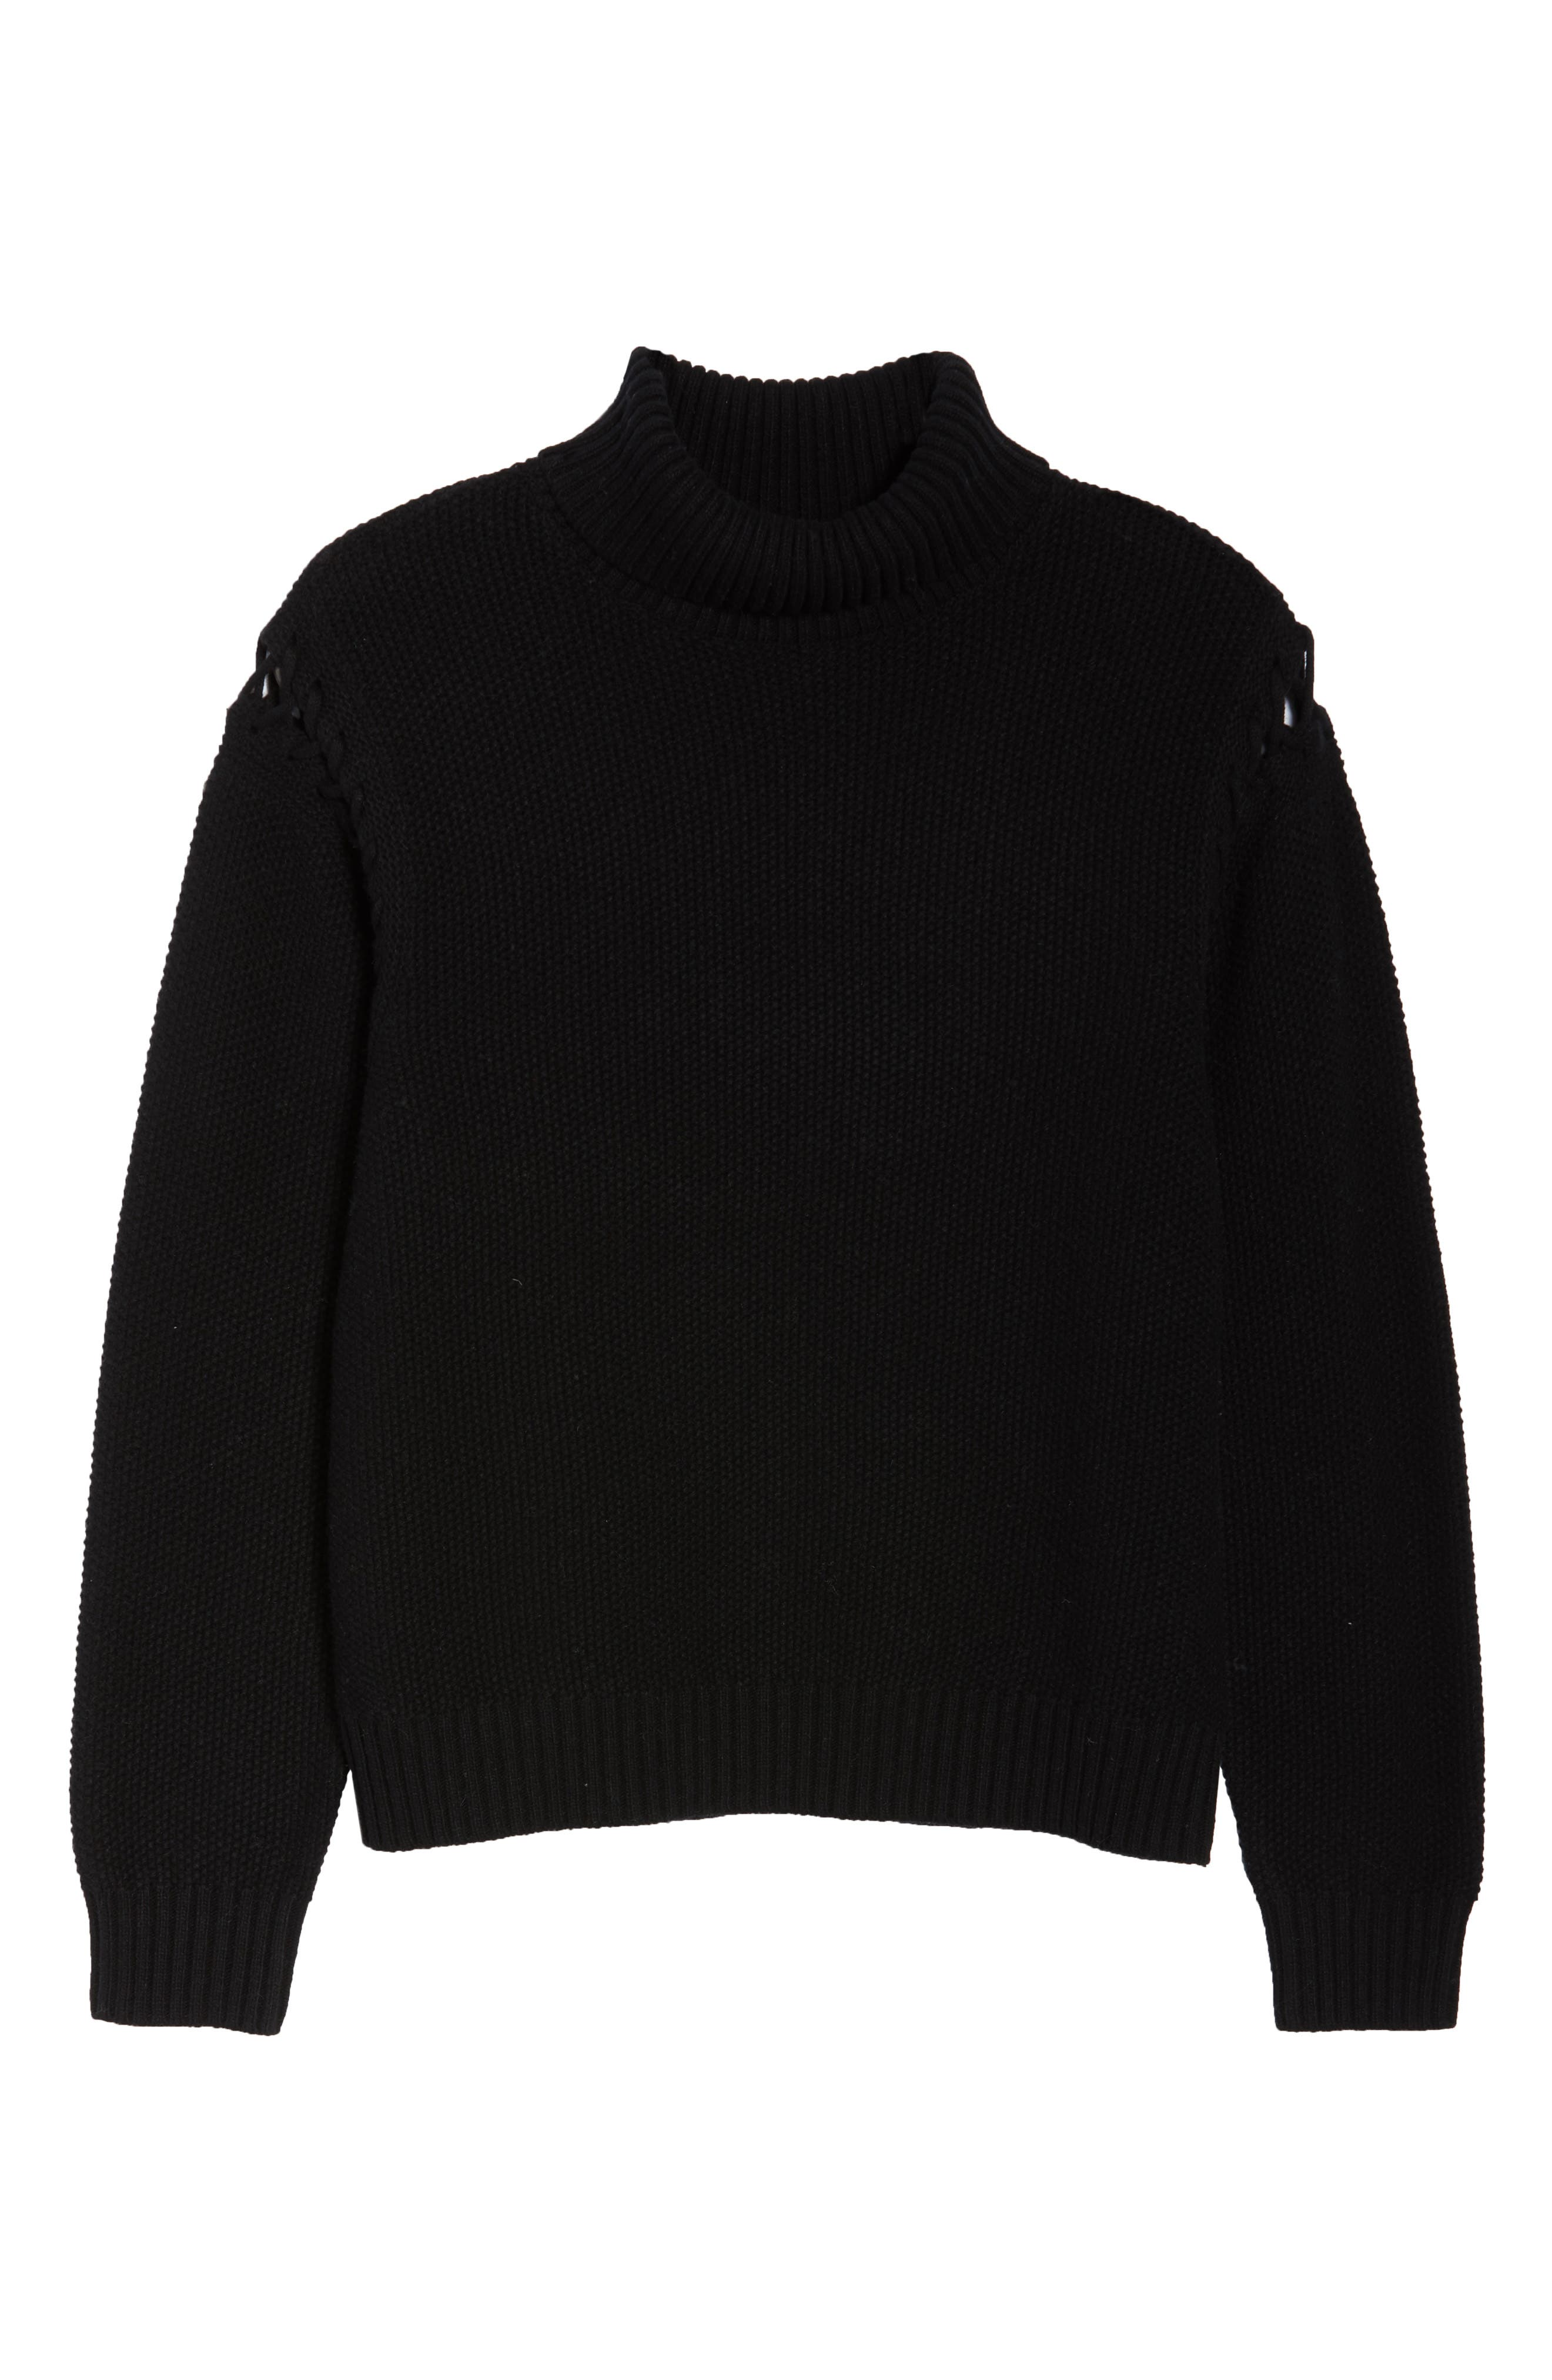 Gisele Turtleneck Sweater,                             Alternate thumbnail 6, color,                             BLACK